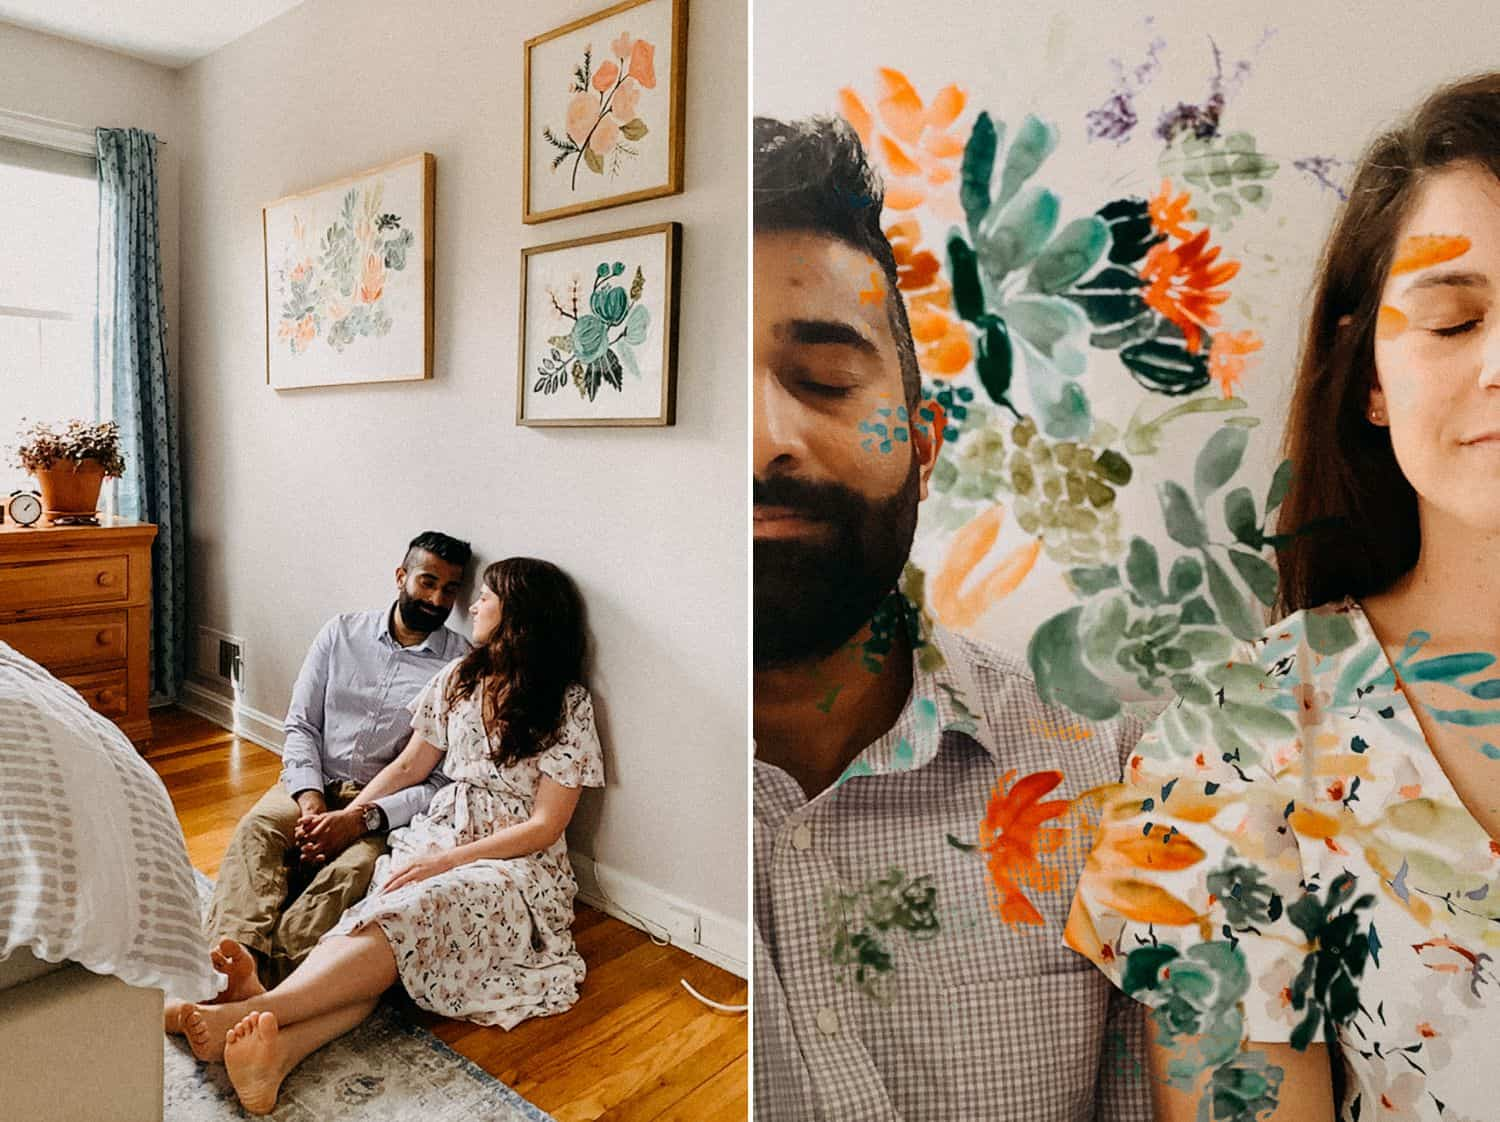 A couple poses among their floral wall art in FaceTime photos taken by Barbara O. Photography